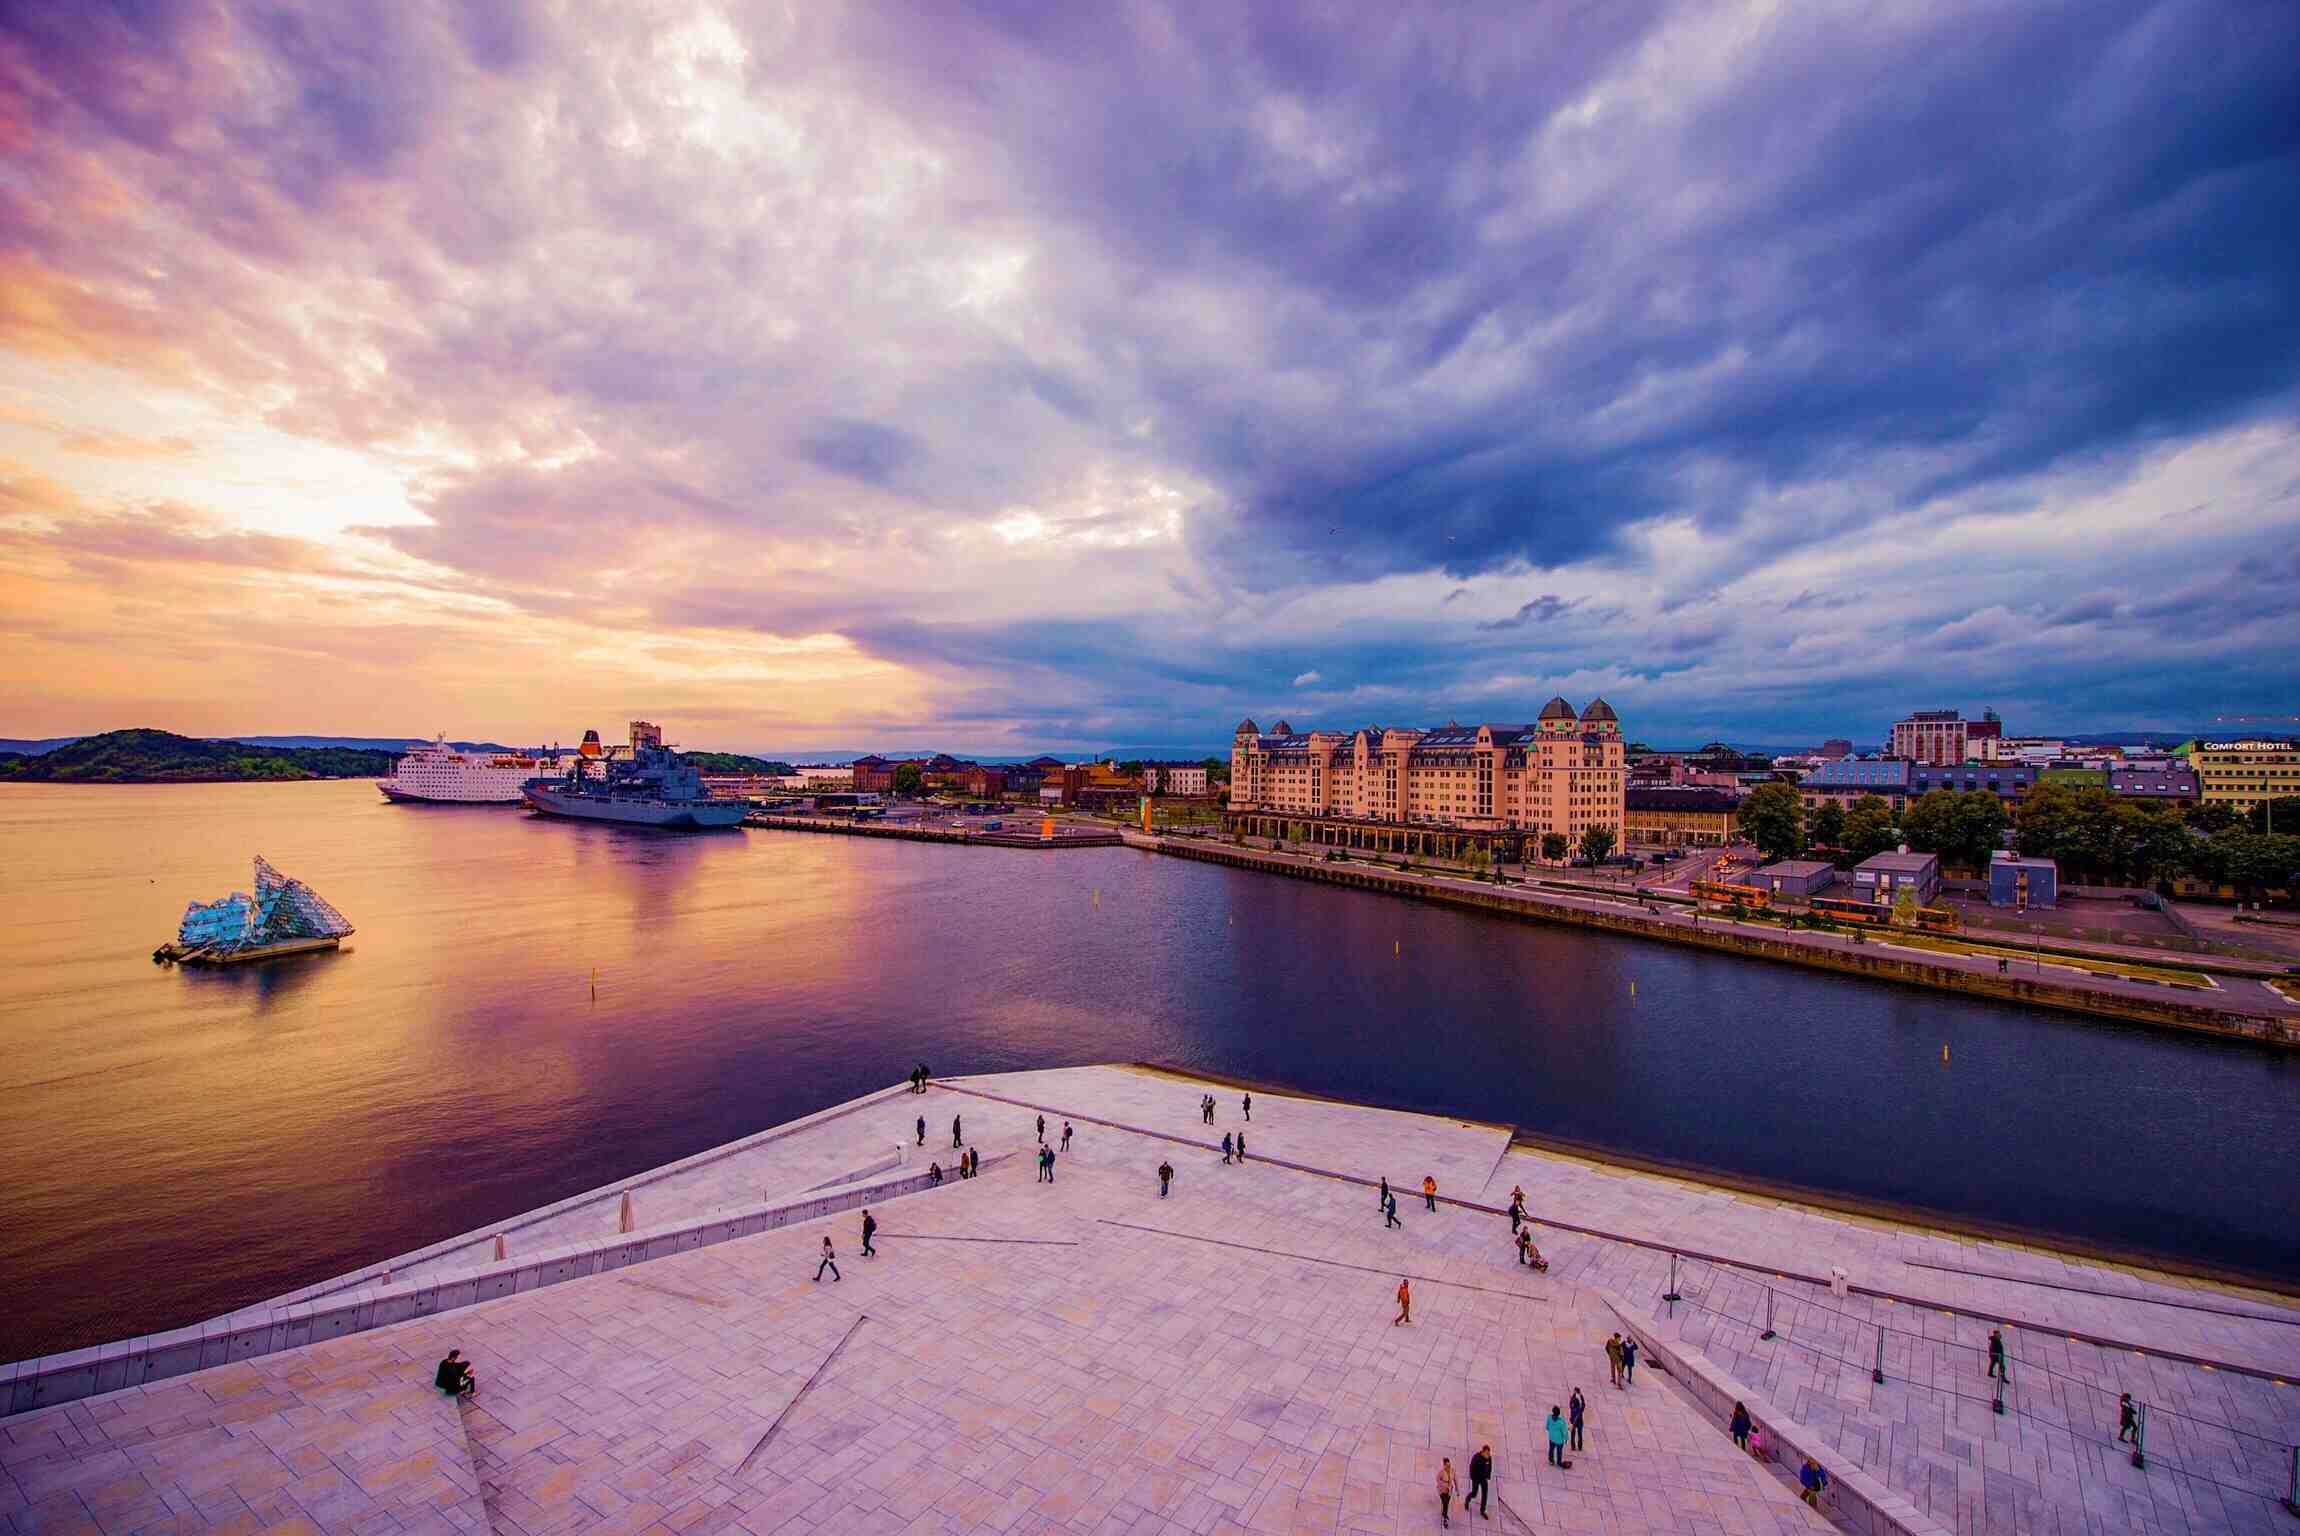 High Angle View Of People At Oslo Opera House Against Cloudy Sky